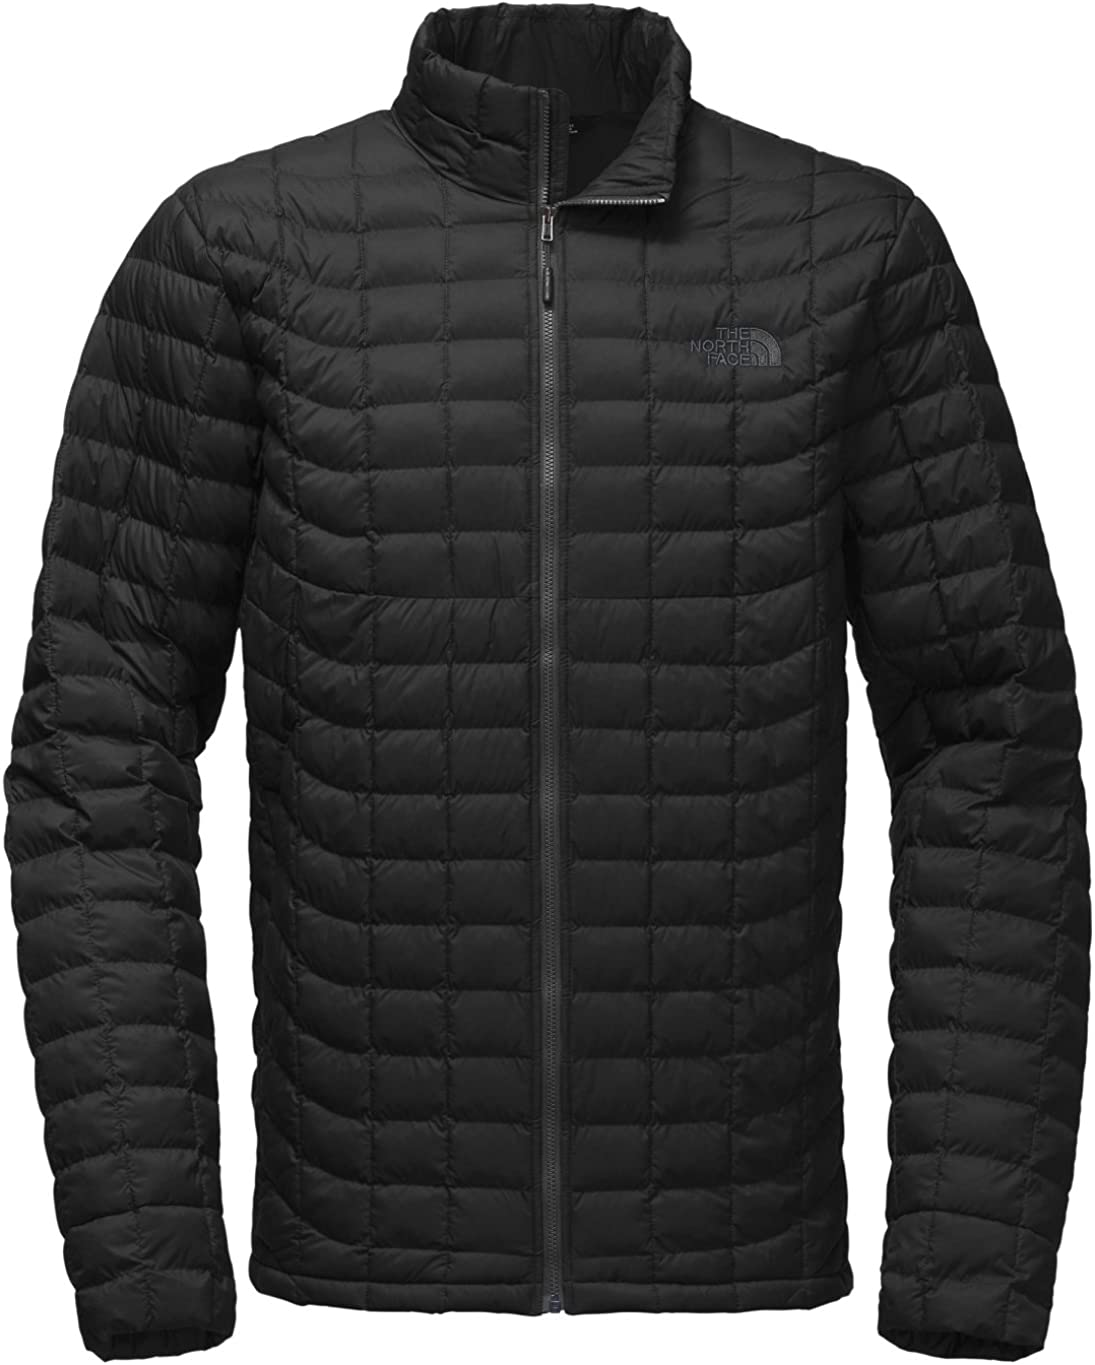 The North Face Men's Tall Thermoball Jacket